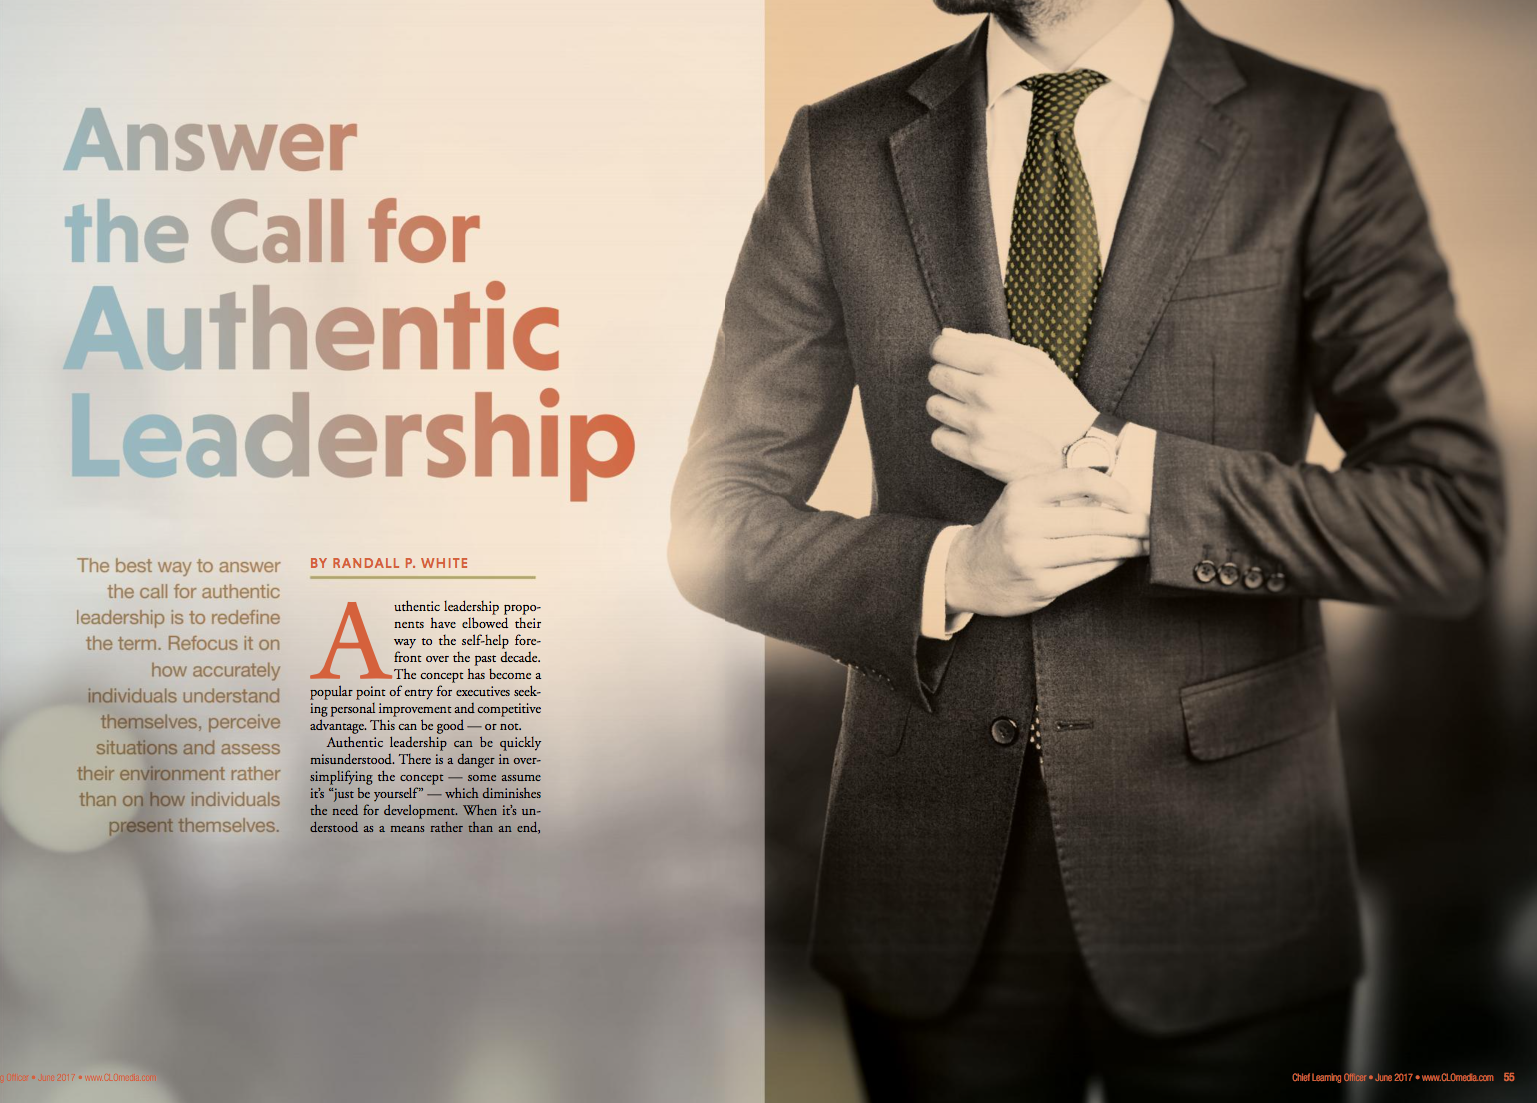 Authentic-Leadership-article-by-Randall-P-White